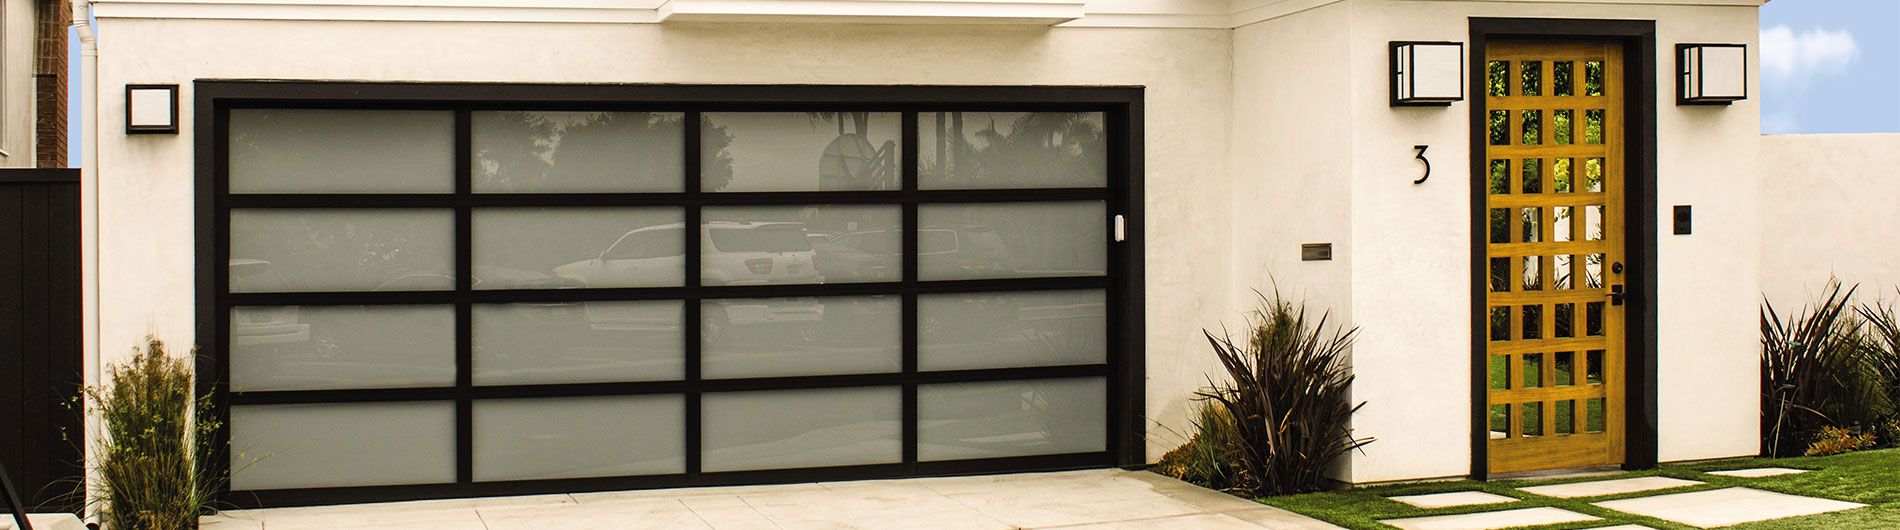 glass garage doors. Model 8800, Black Anodized Aluminum, White Laminated Glass Garage Doors Wayne Dalton